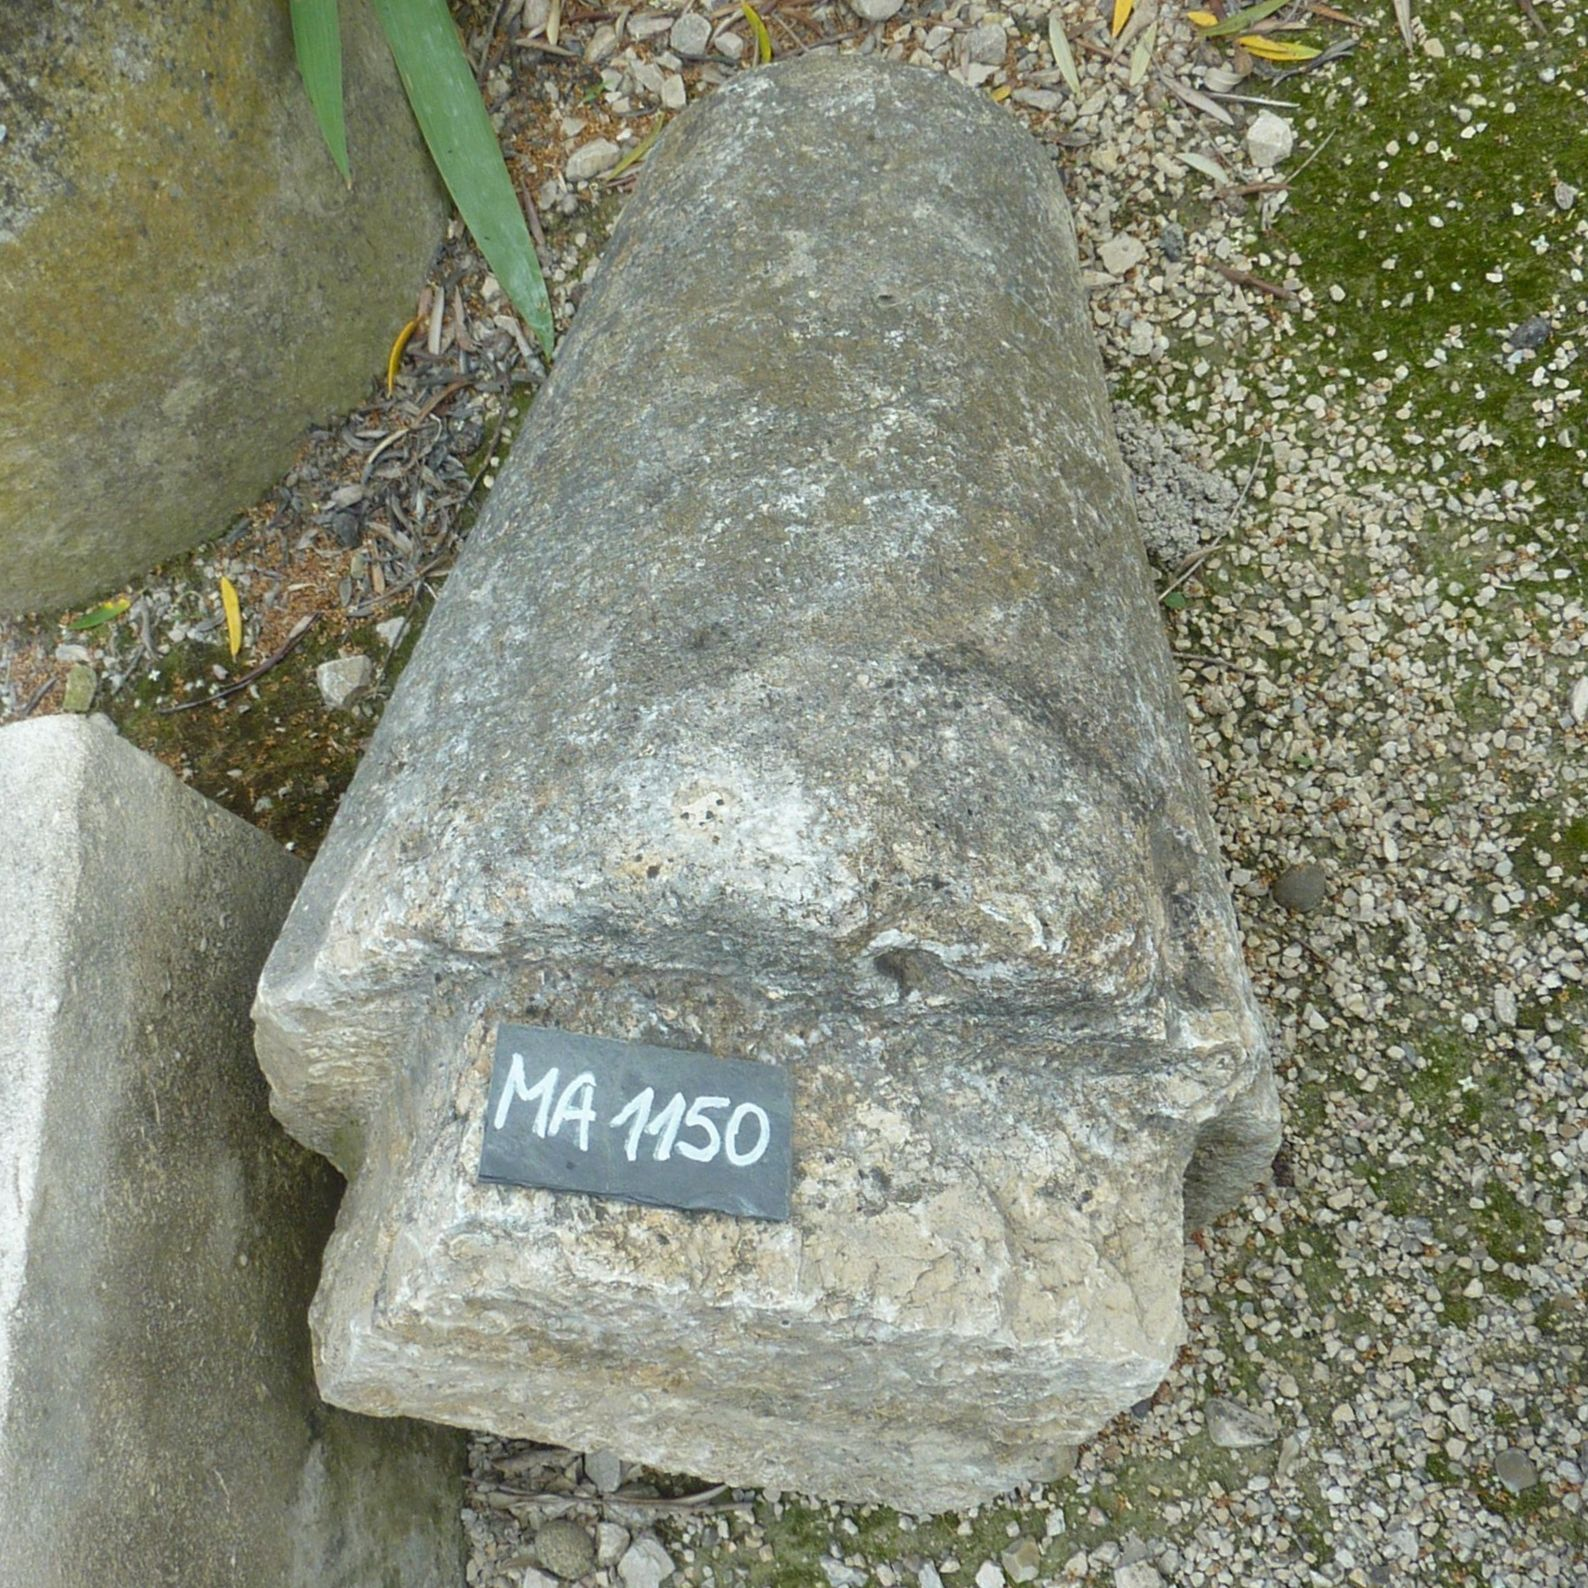 old conical marker -craft marker made of monolith stone.